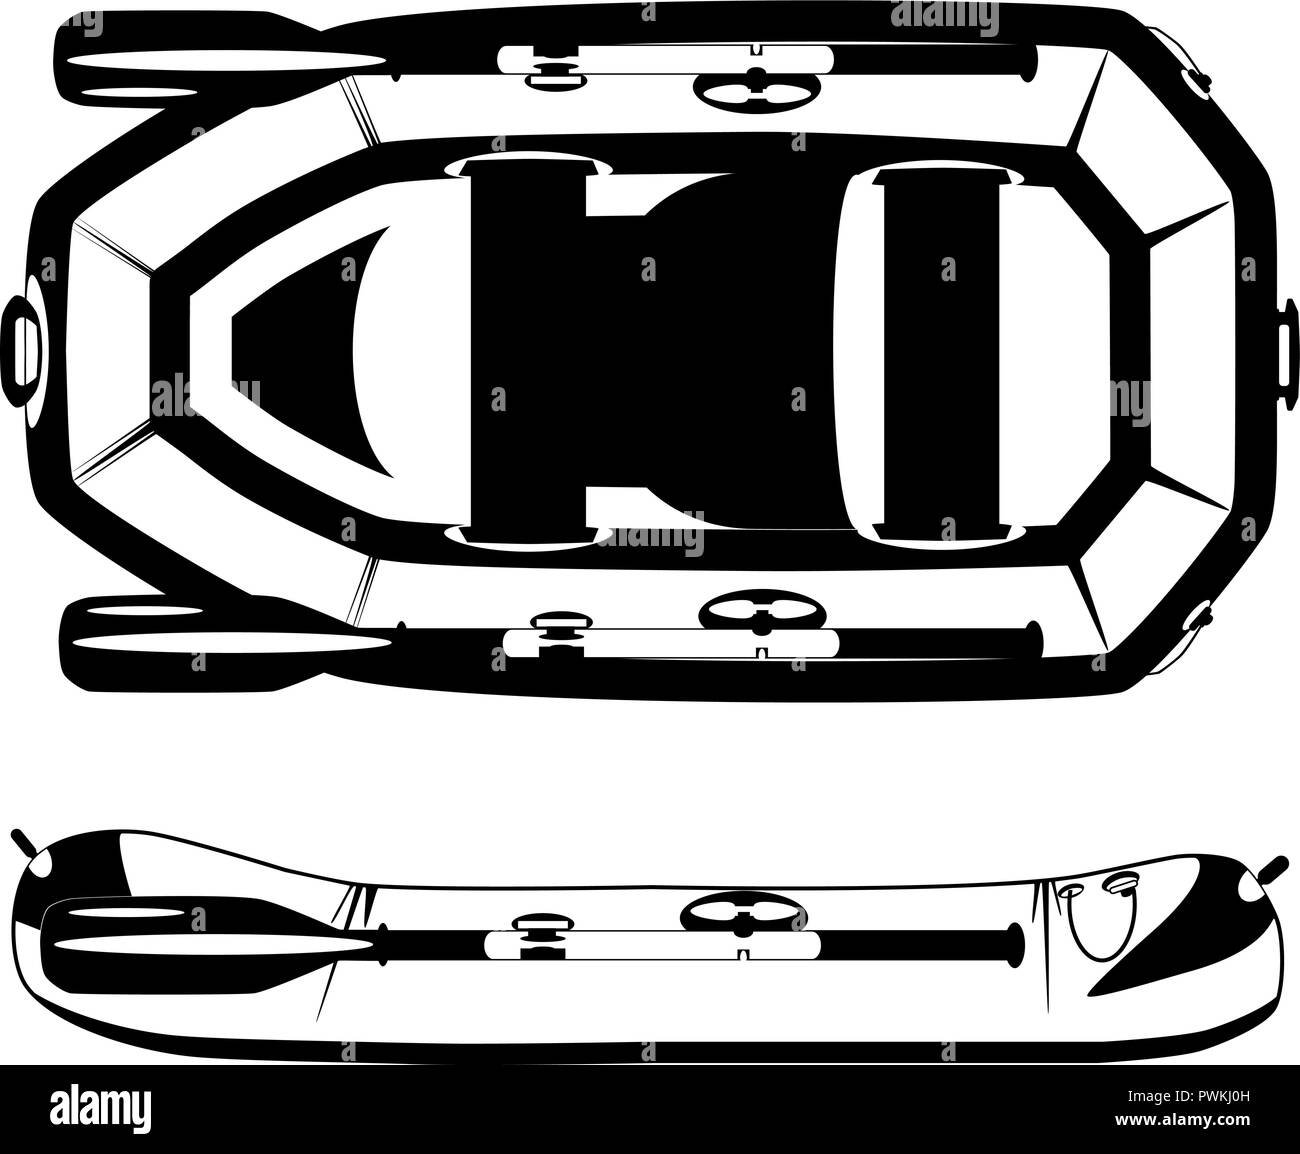 Rafting inflatable rubber boat vector black template - Stock Vector